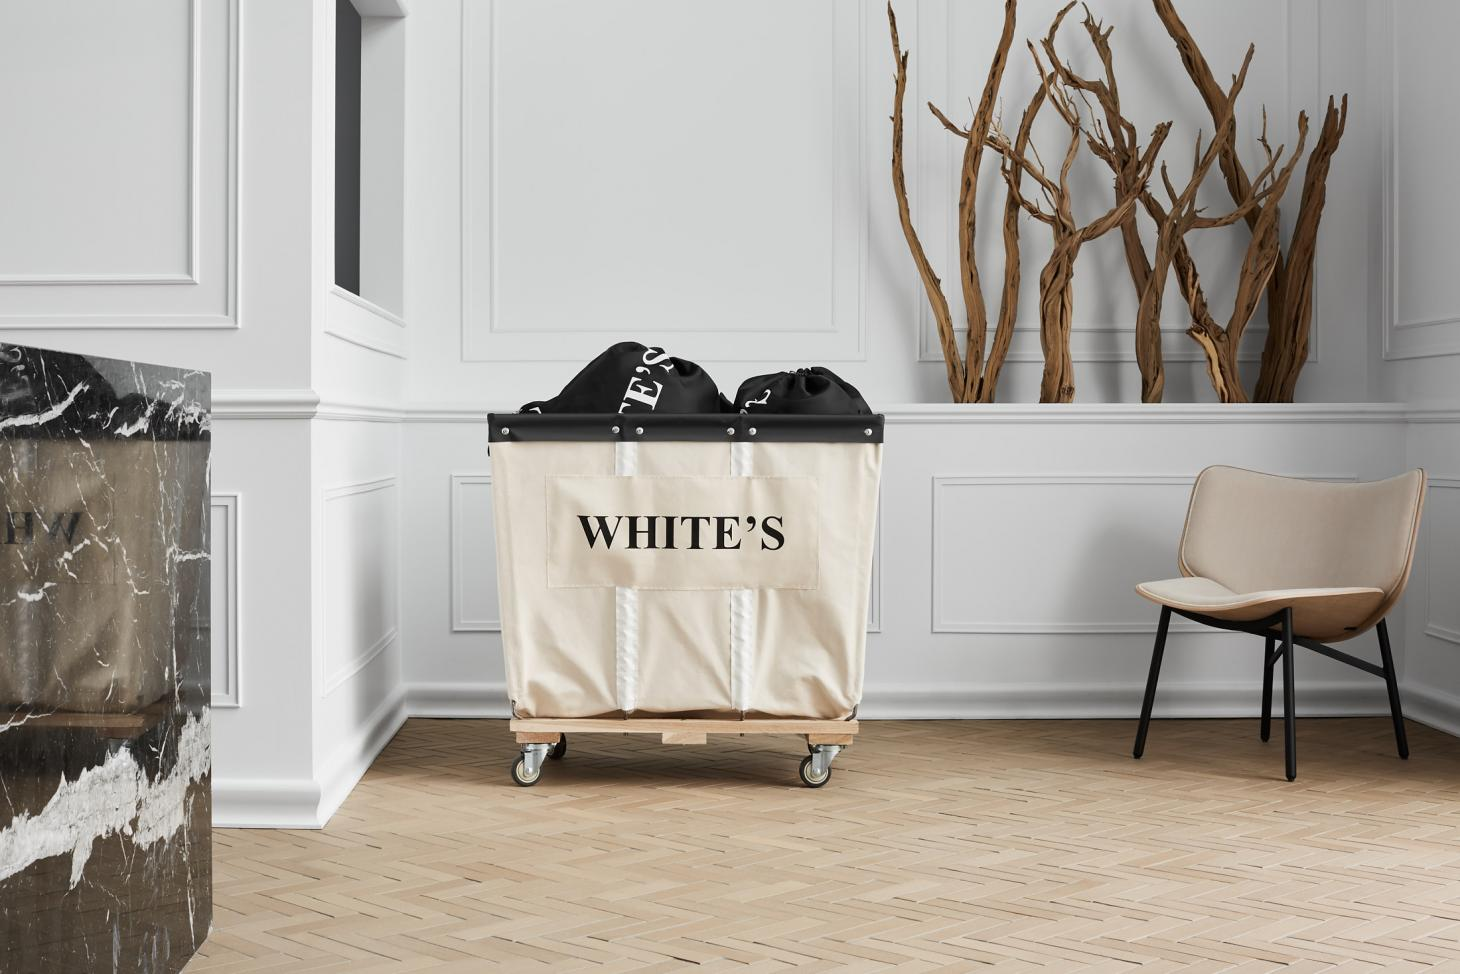 White's laundry in Montreal